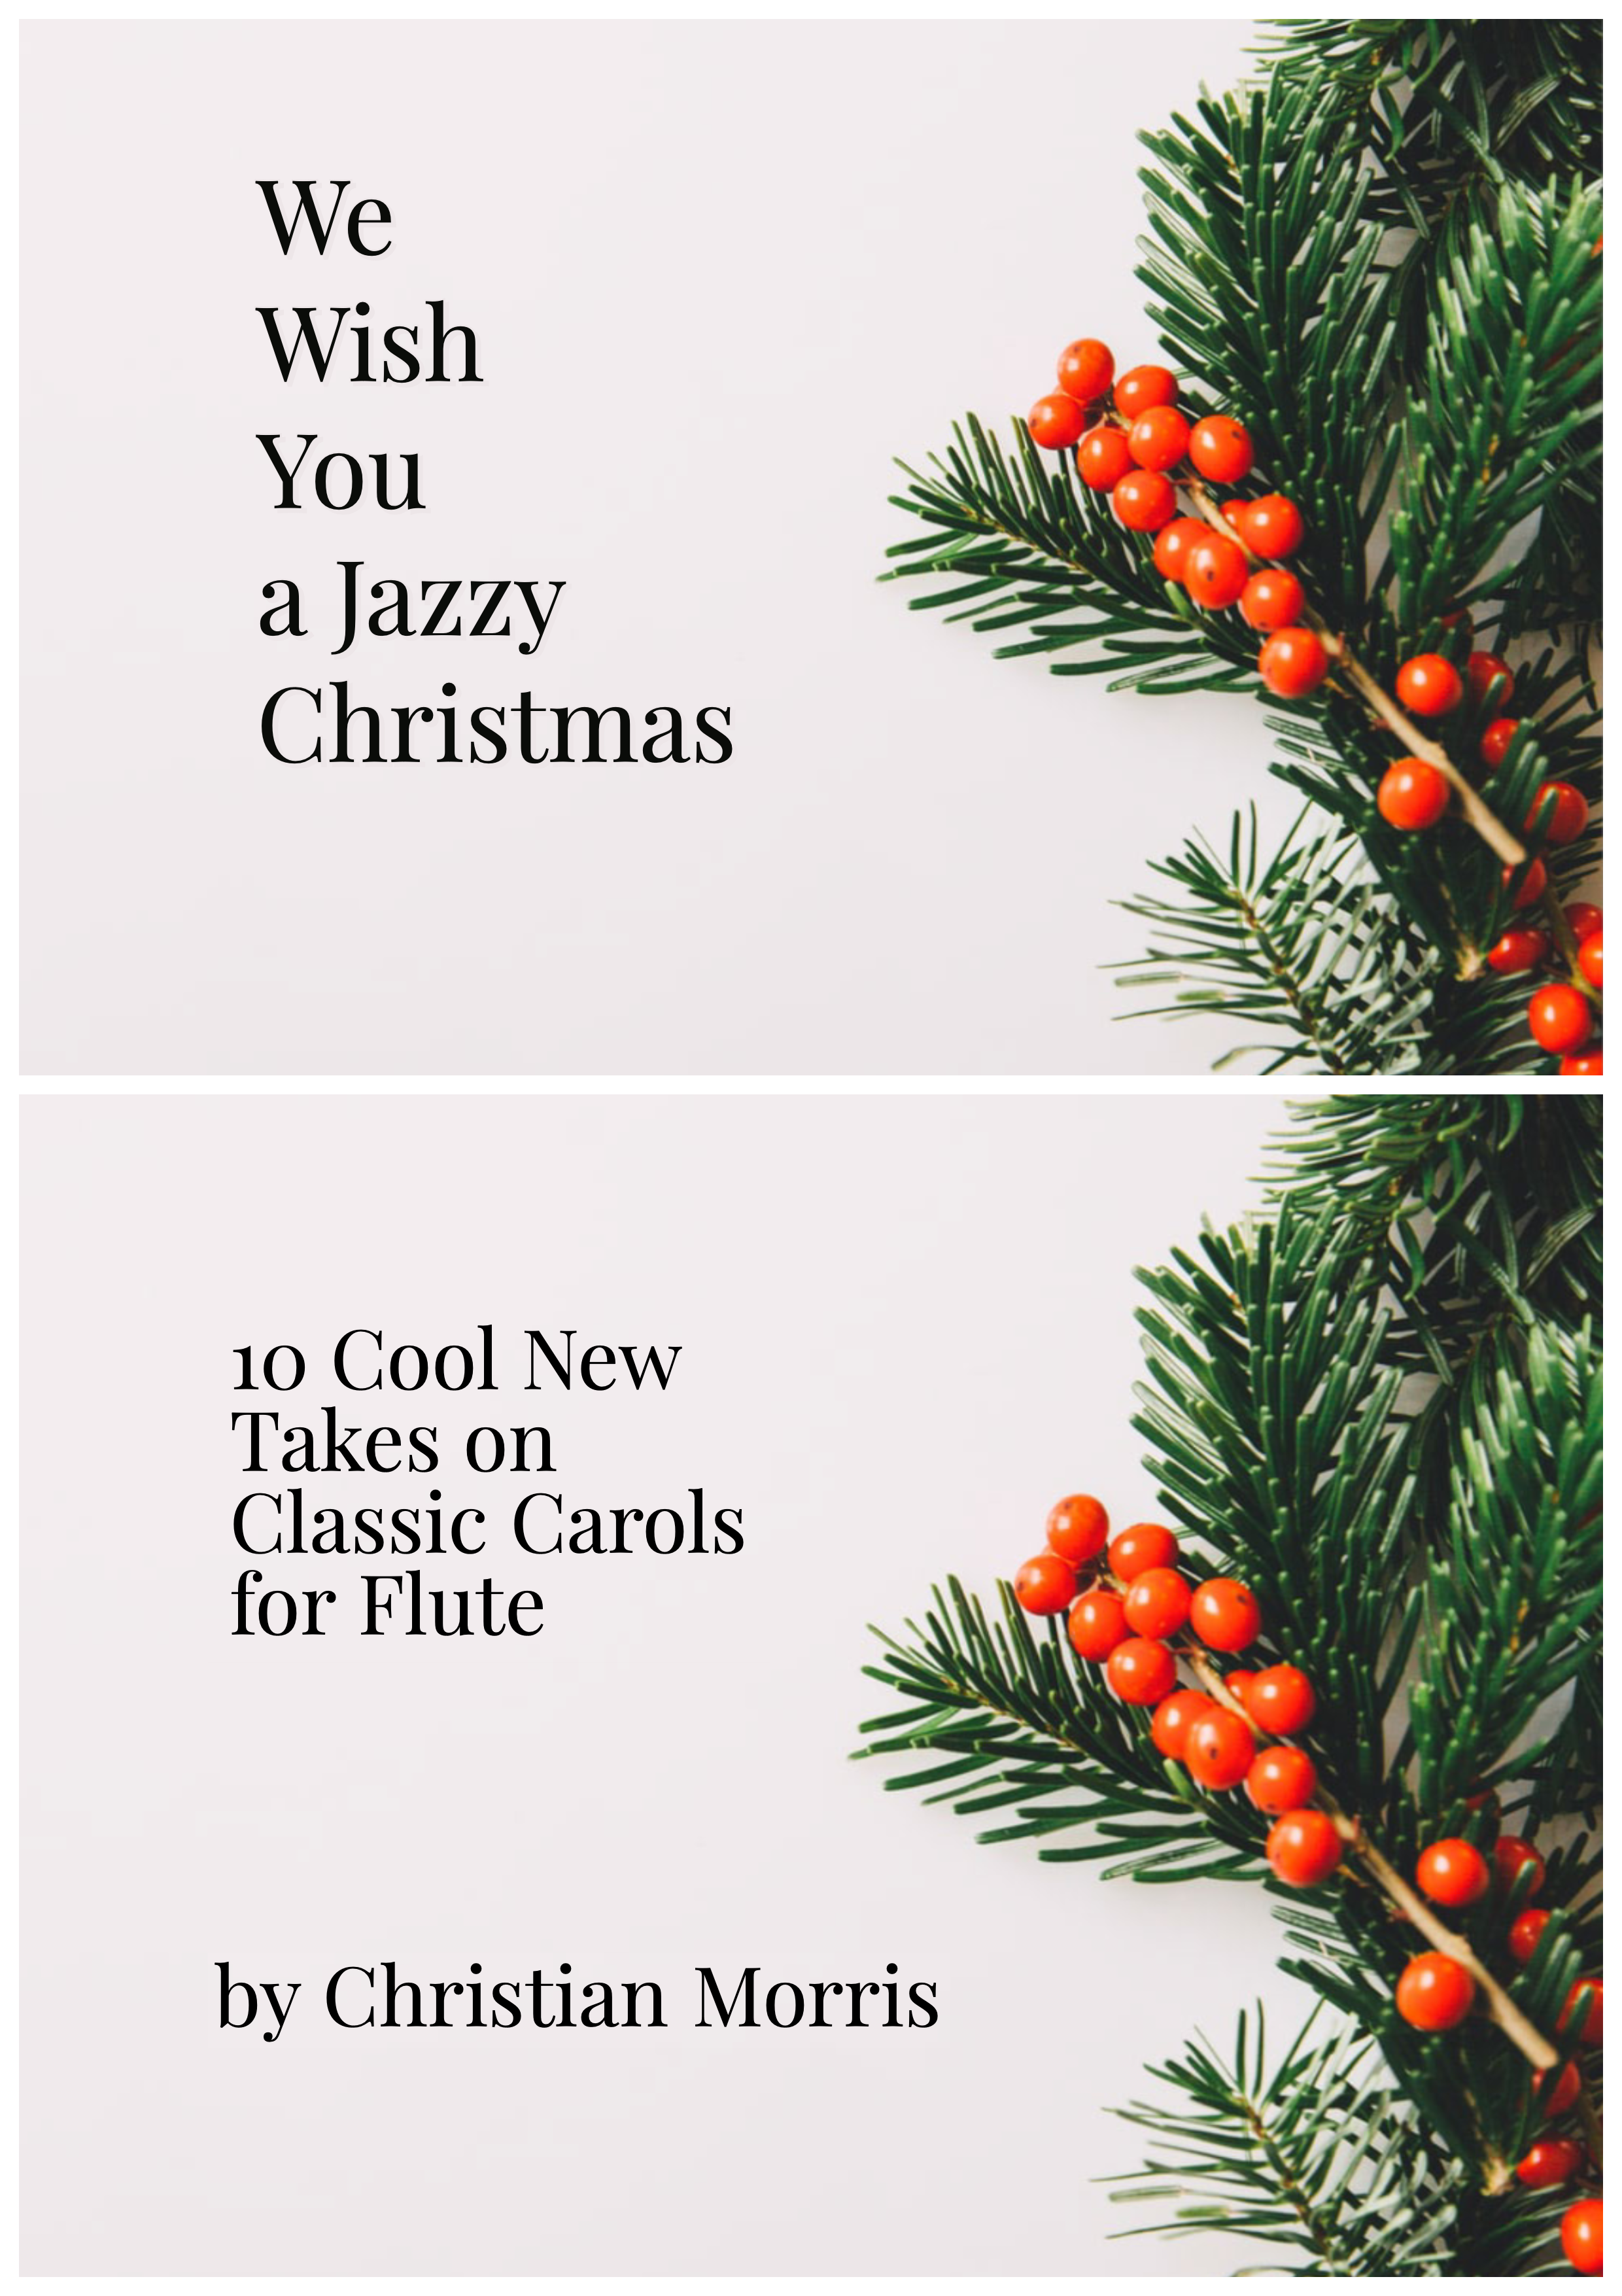 We Wish You A Jazzy Christmas (Ten Cool New Takes on Classic Carols) for Flute